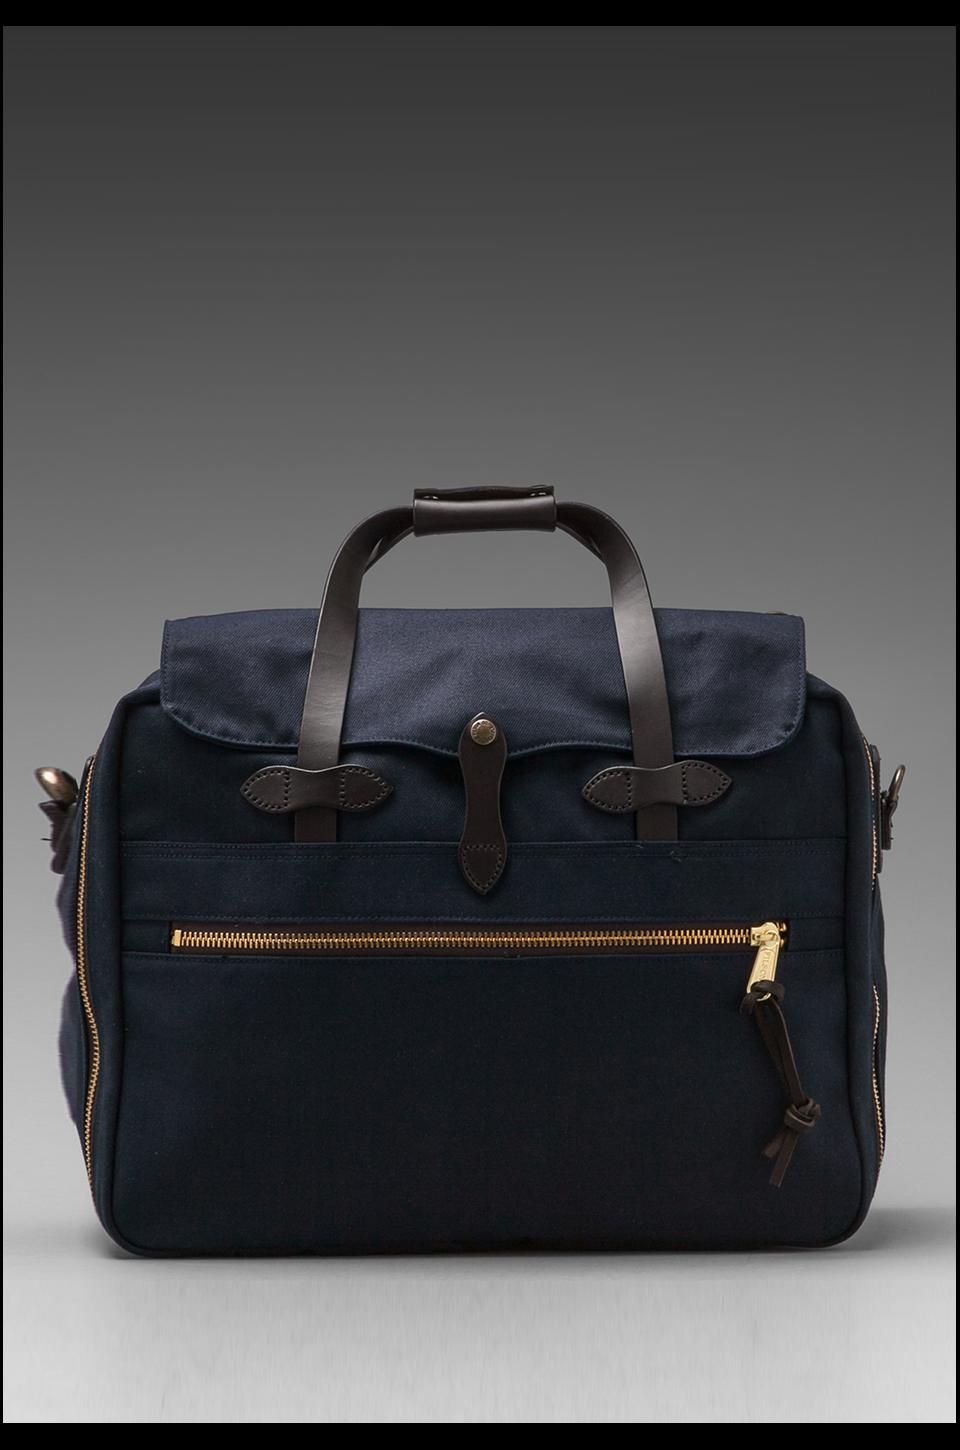 Filson Large Twill Carry-On Travel in Navy